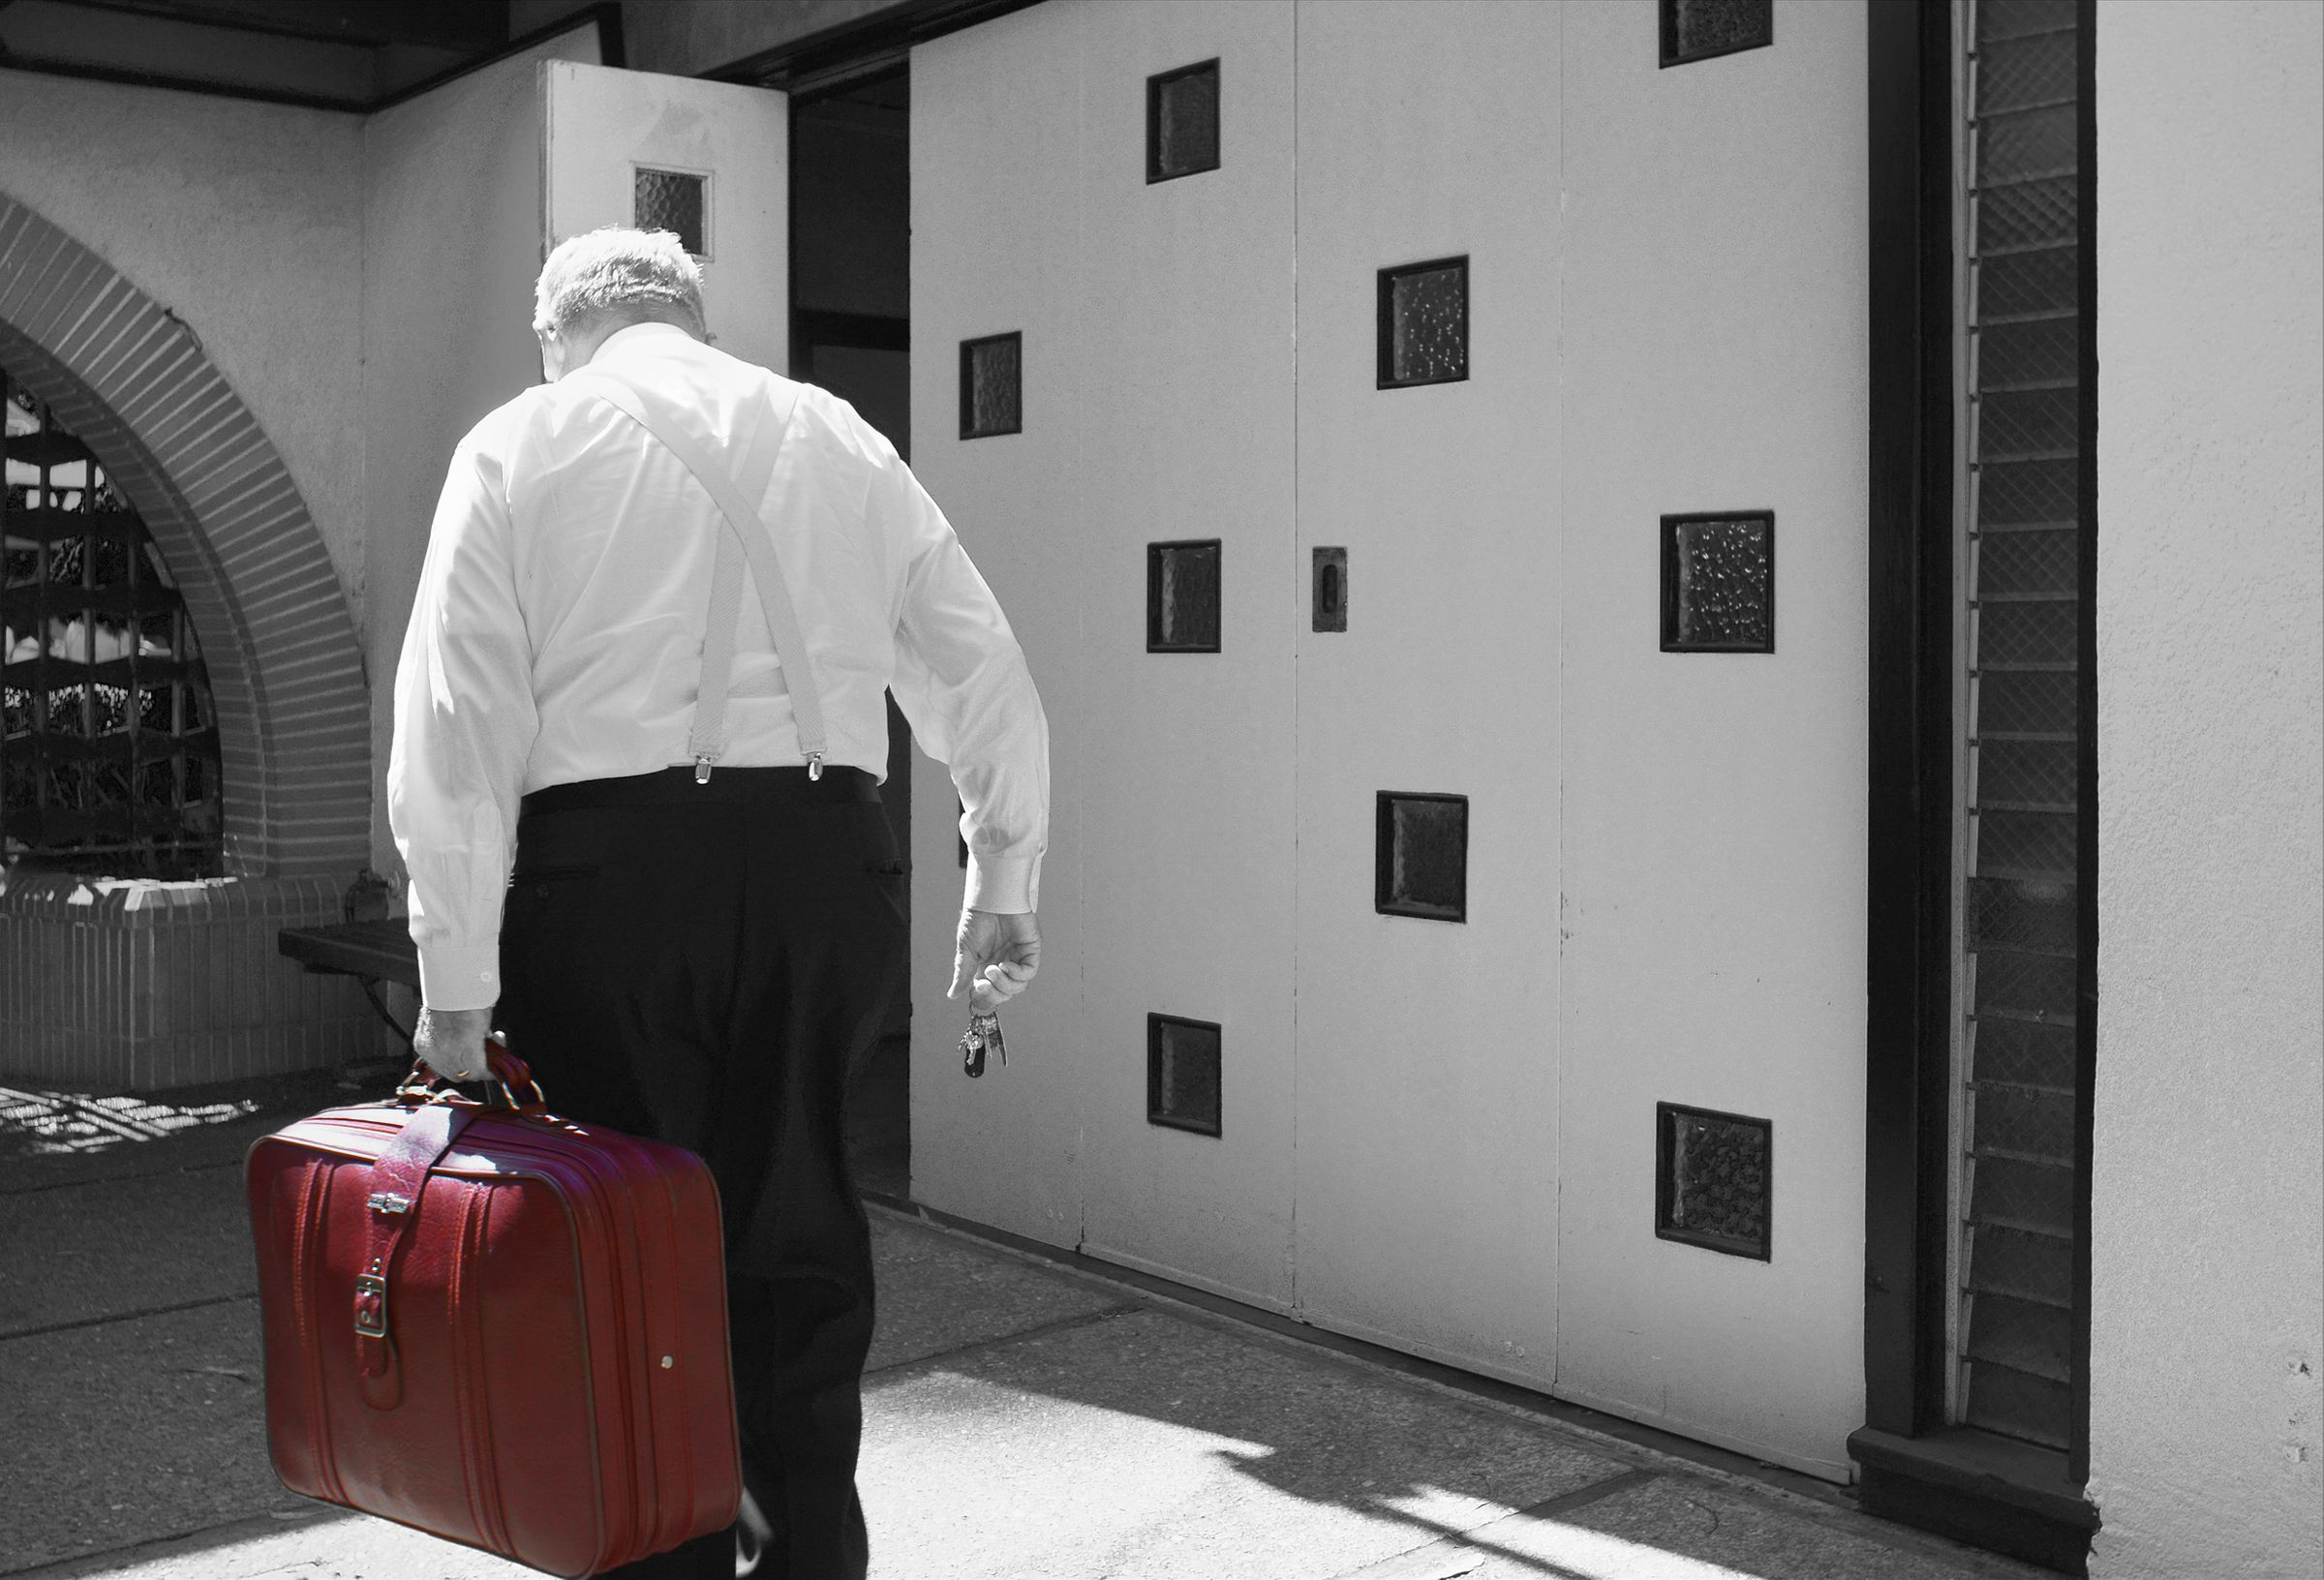 Red Suitcase & Keys, San Francisco